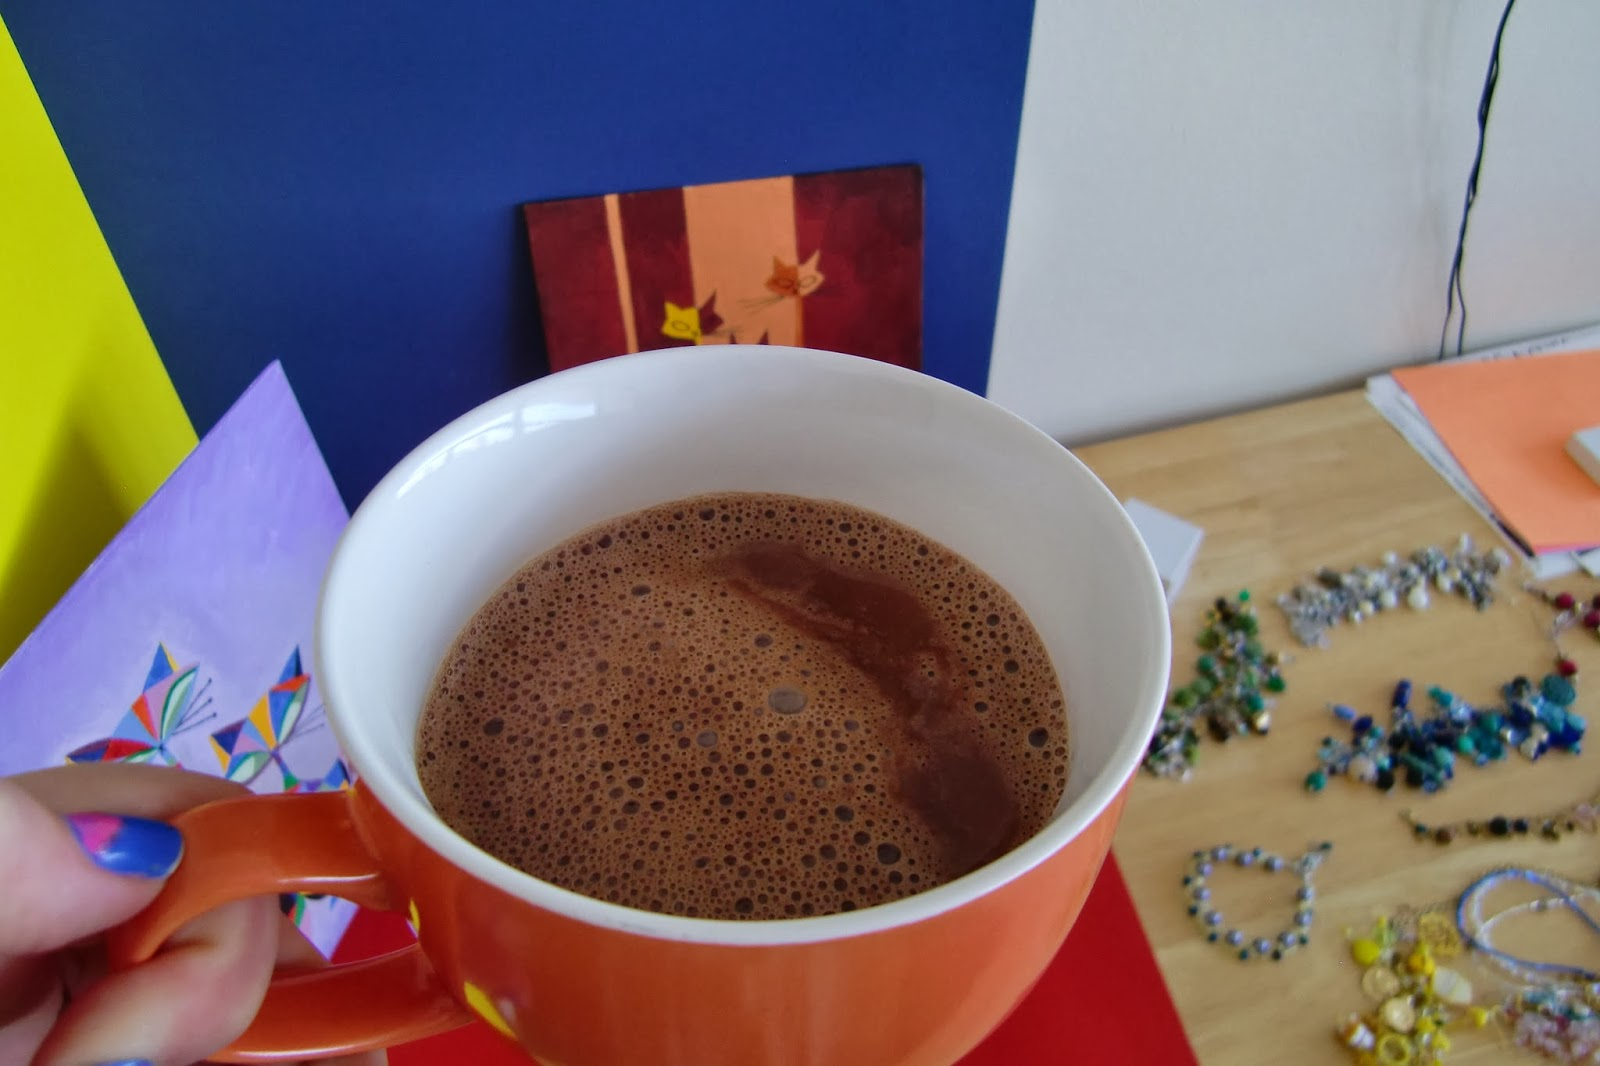 ... Adventures of Emerald Erin: Tipsy Tuesday: Hazelnut Dark Hot Chocolate